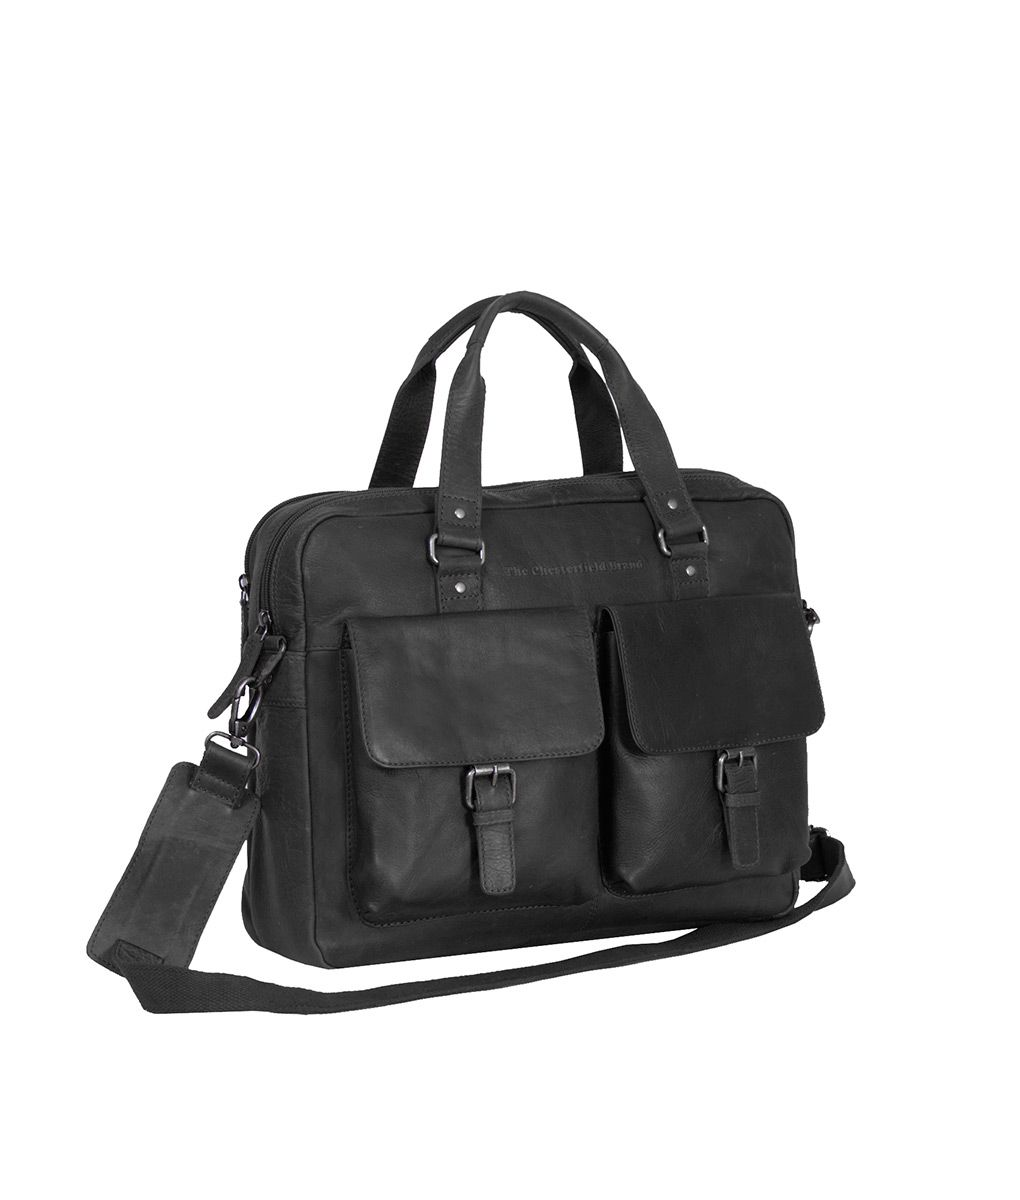 b7cad27a875 Casual Laptop Bag Large Black 'George' | Leather Chesterfield Bags Online  Shop | Chesterfield Bags